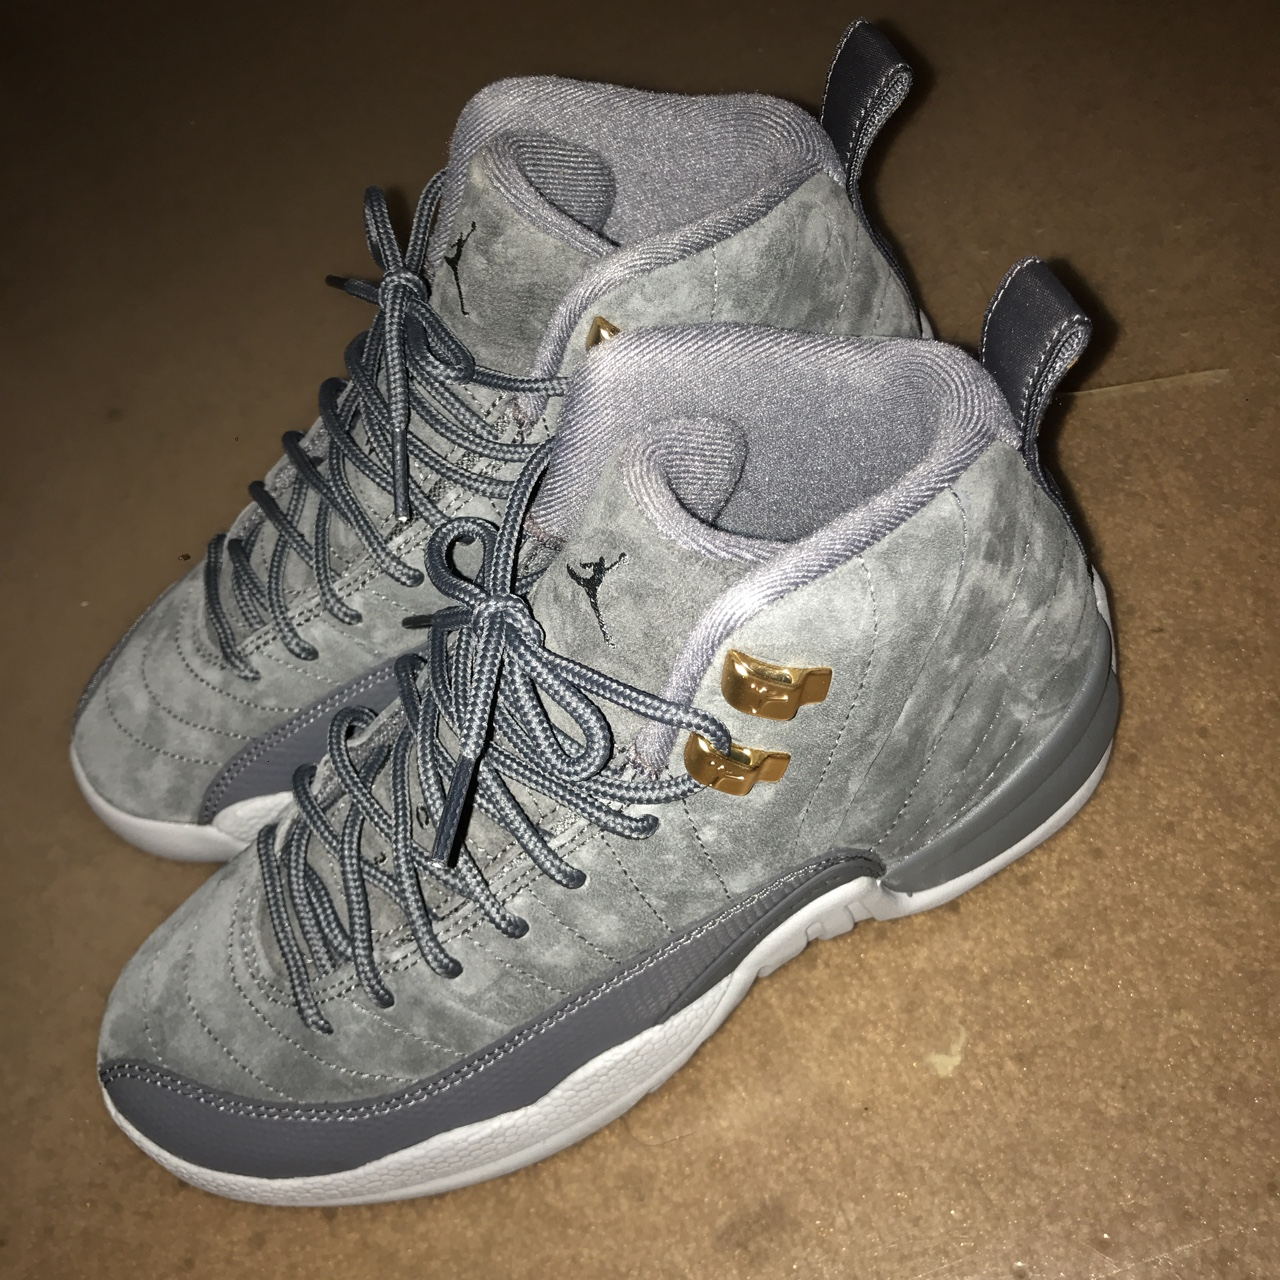 huge selection of ac74e e02ba Air Jordan 12 wolf grey suede. Brand new never worn.... - Depop